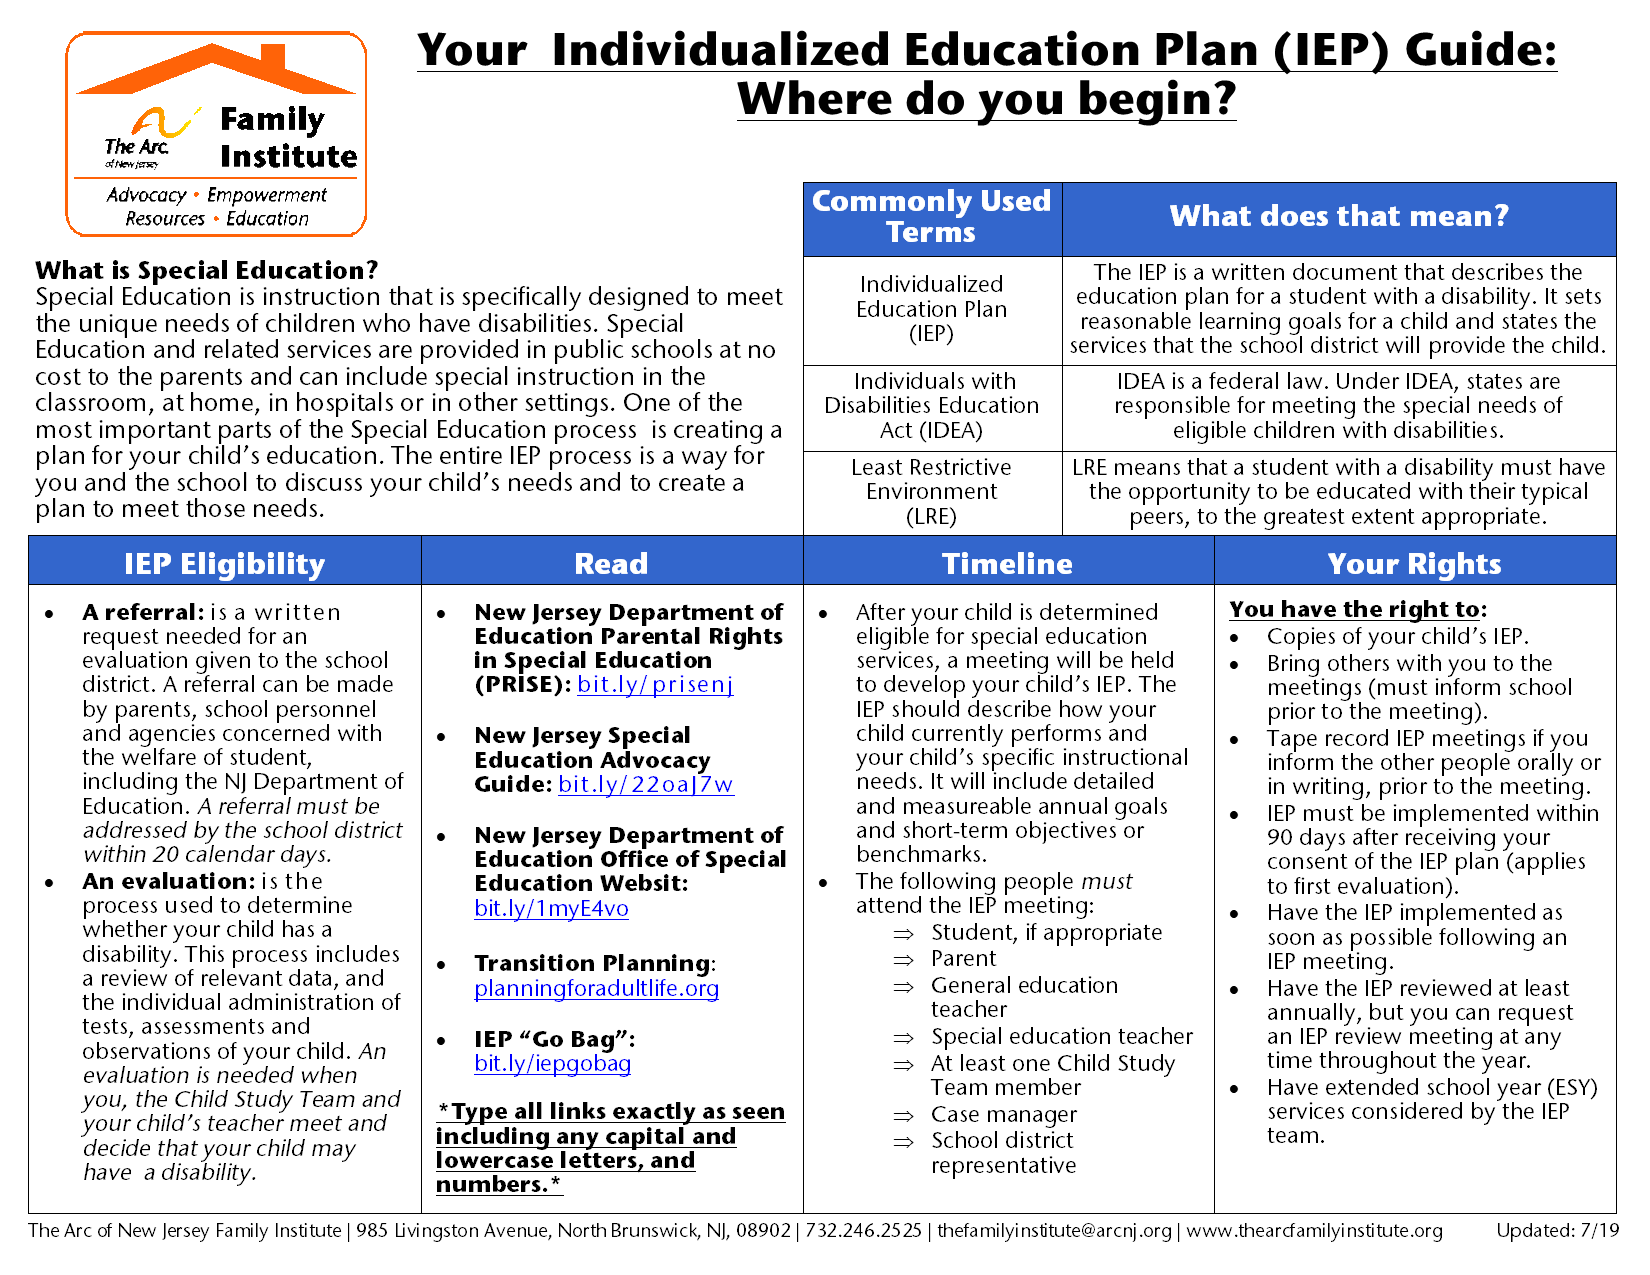 Your  Individualized Education Plan (IEP) Guide: Where do you begin?